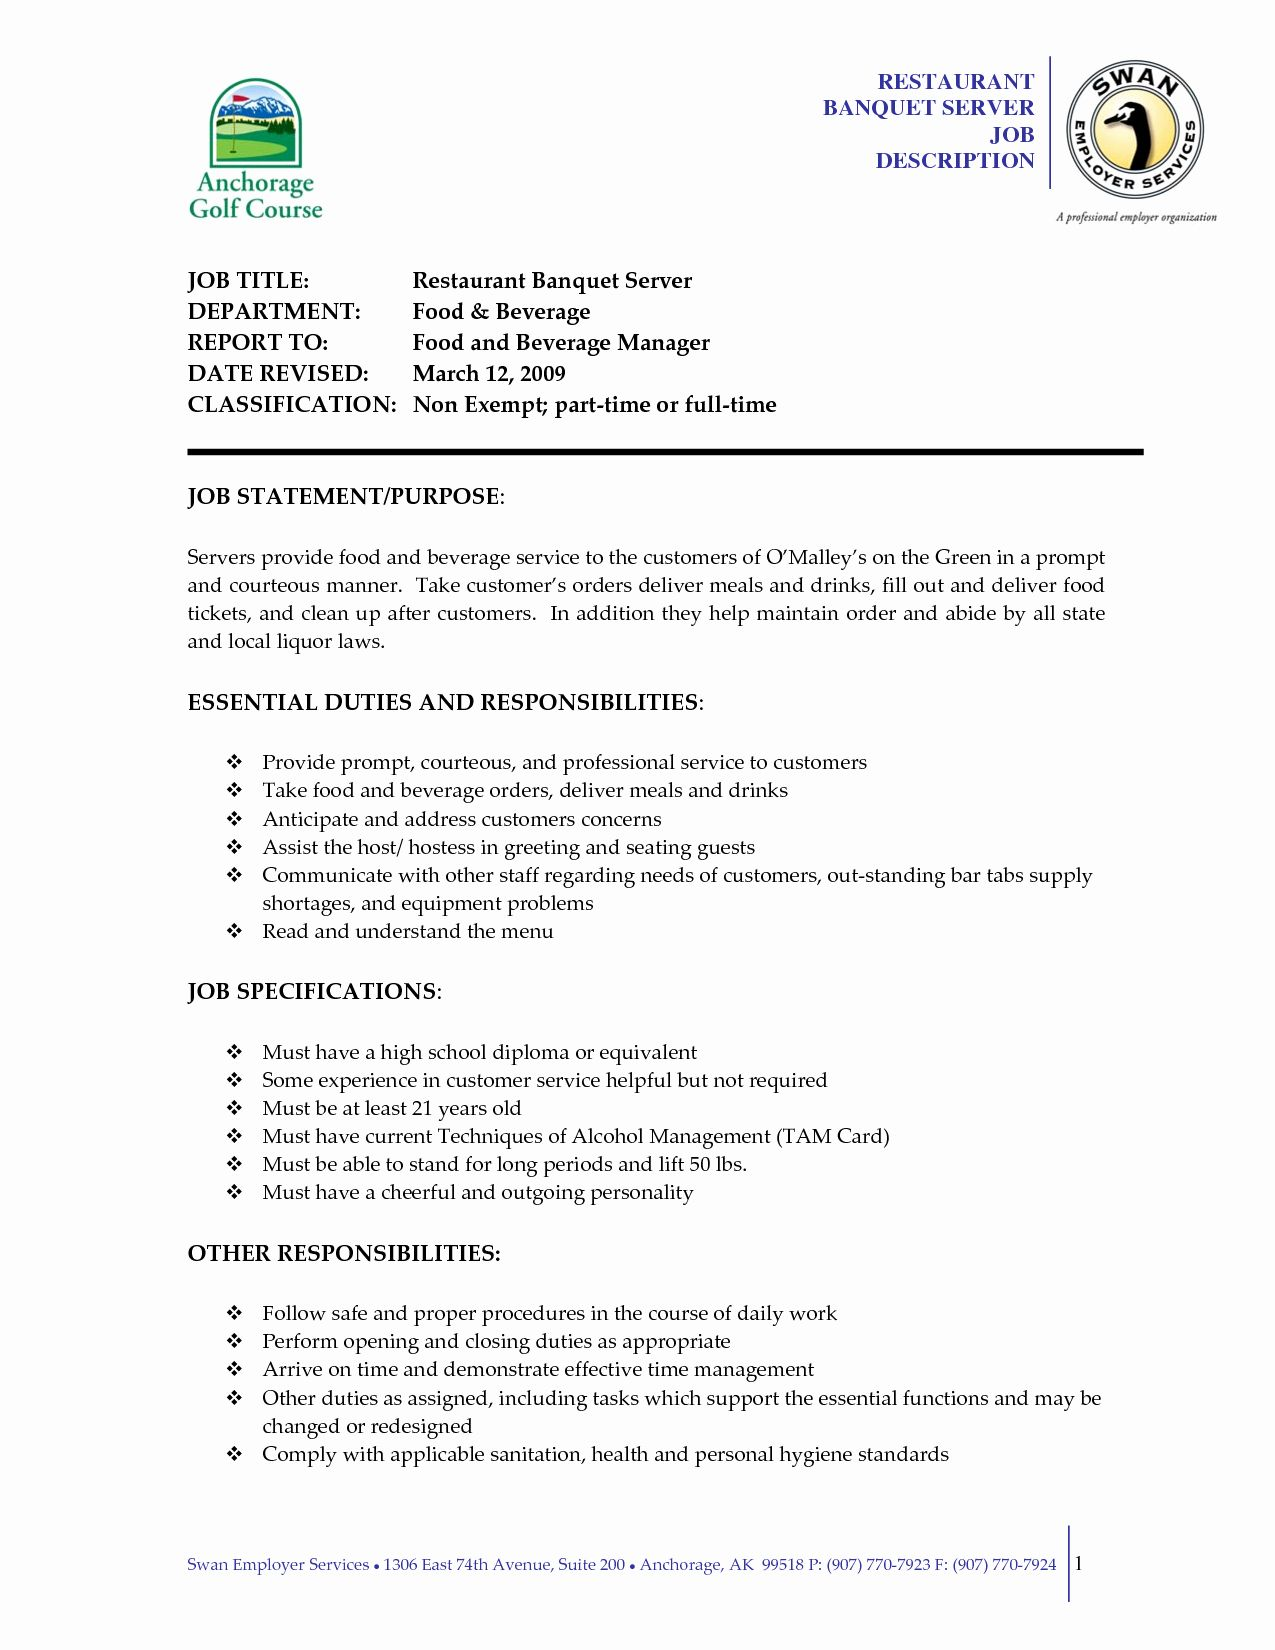 server job description resume beautiful serving examples sample formatting ideas in guide Resume Server Duties And Responsibilities For Resume